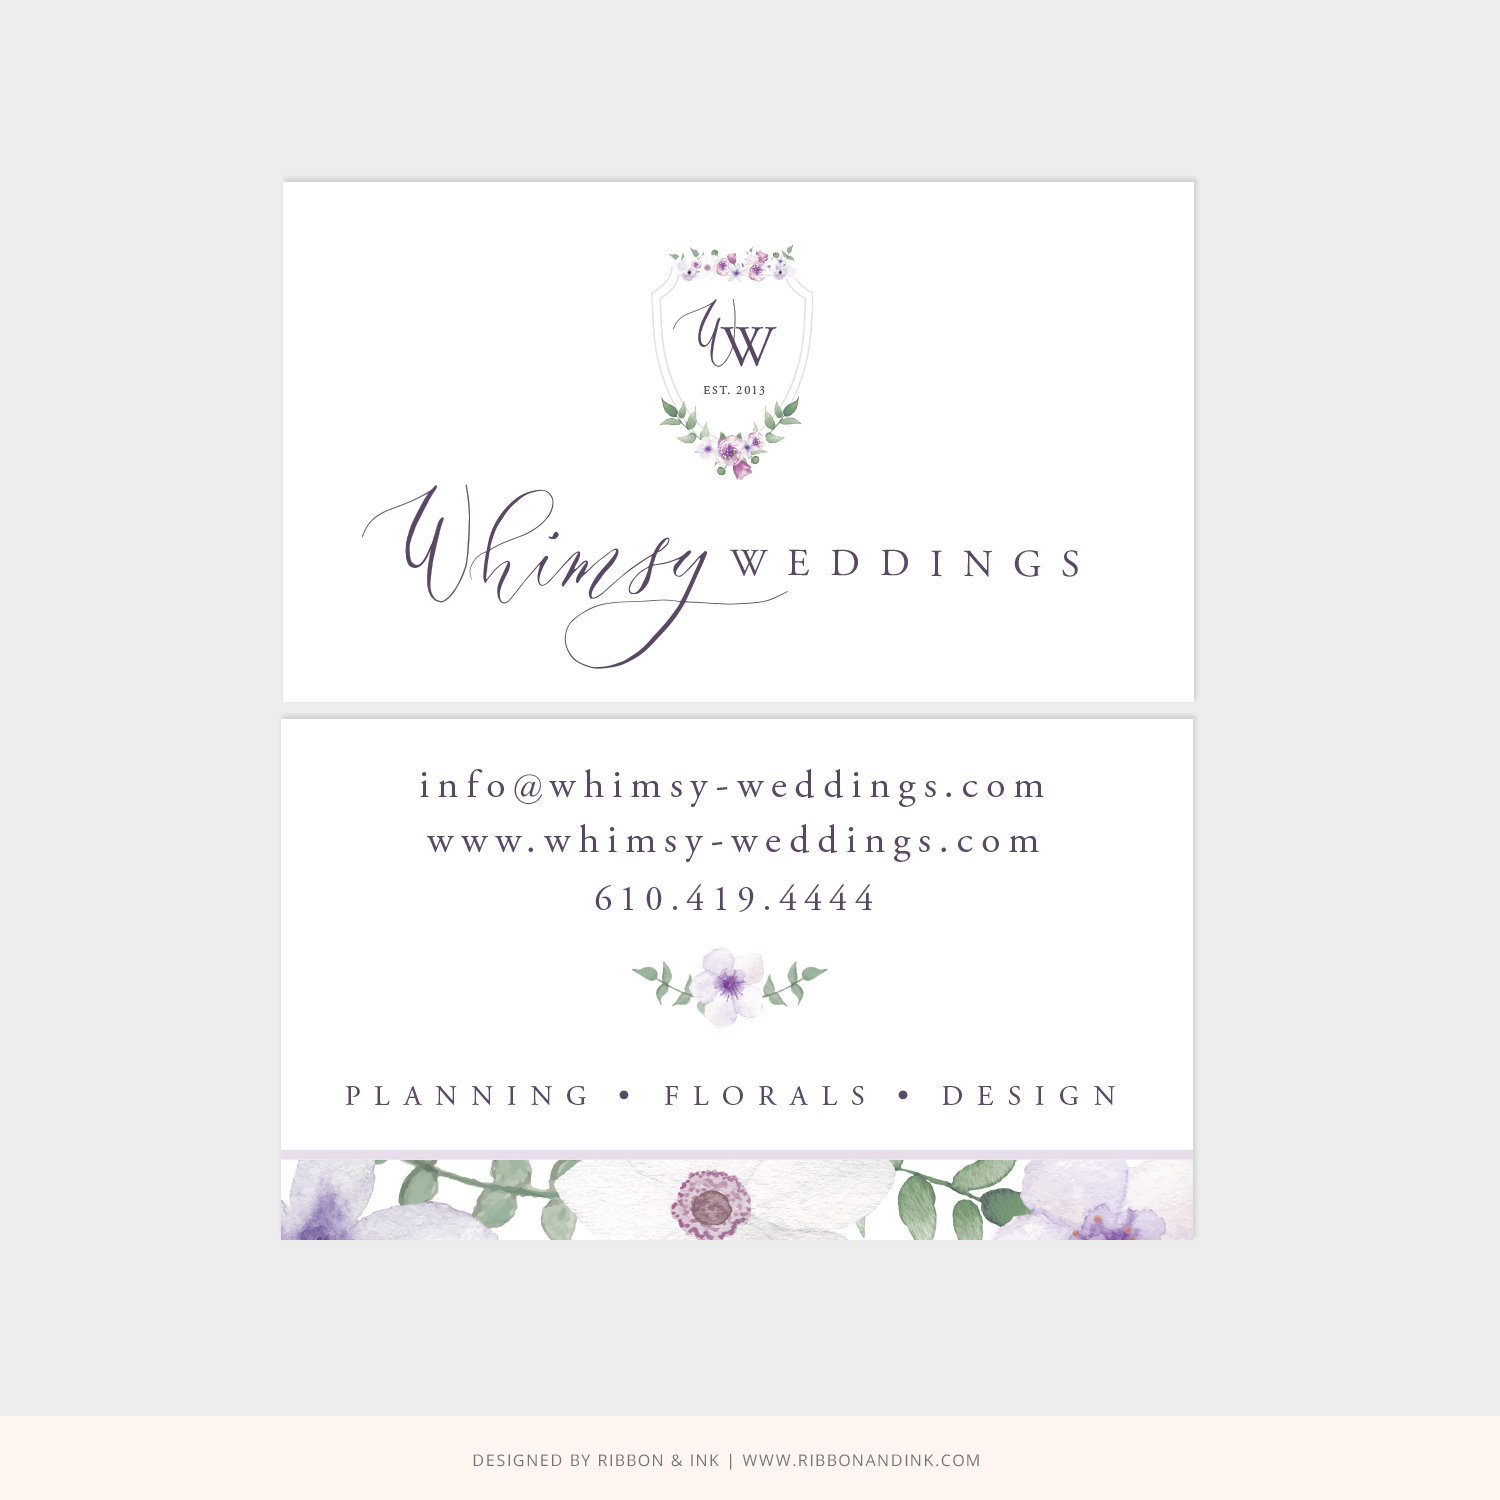 WhimsyWeddings_BizCard_v03